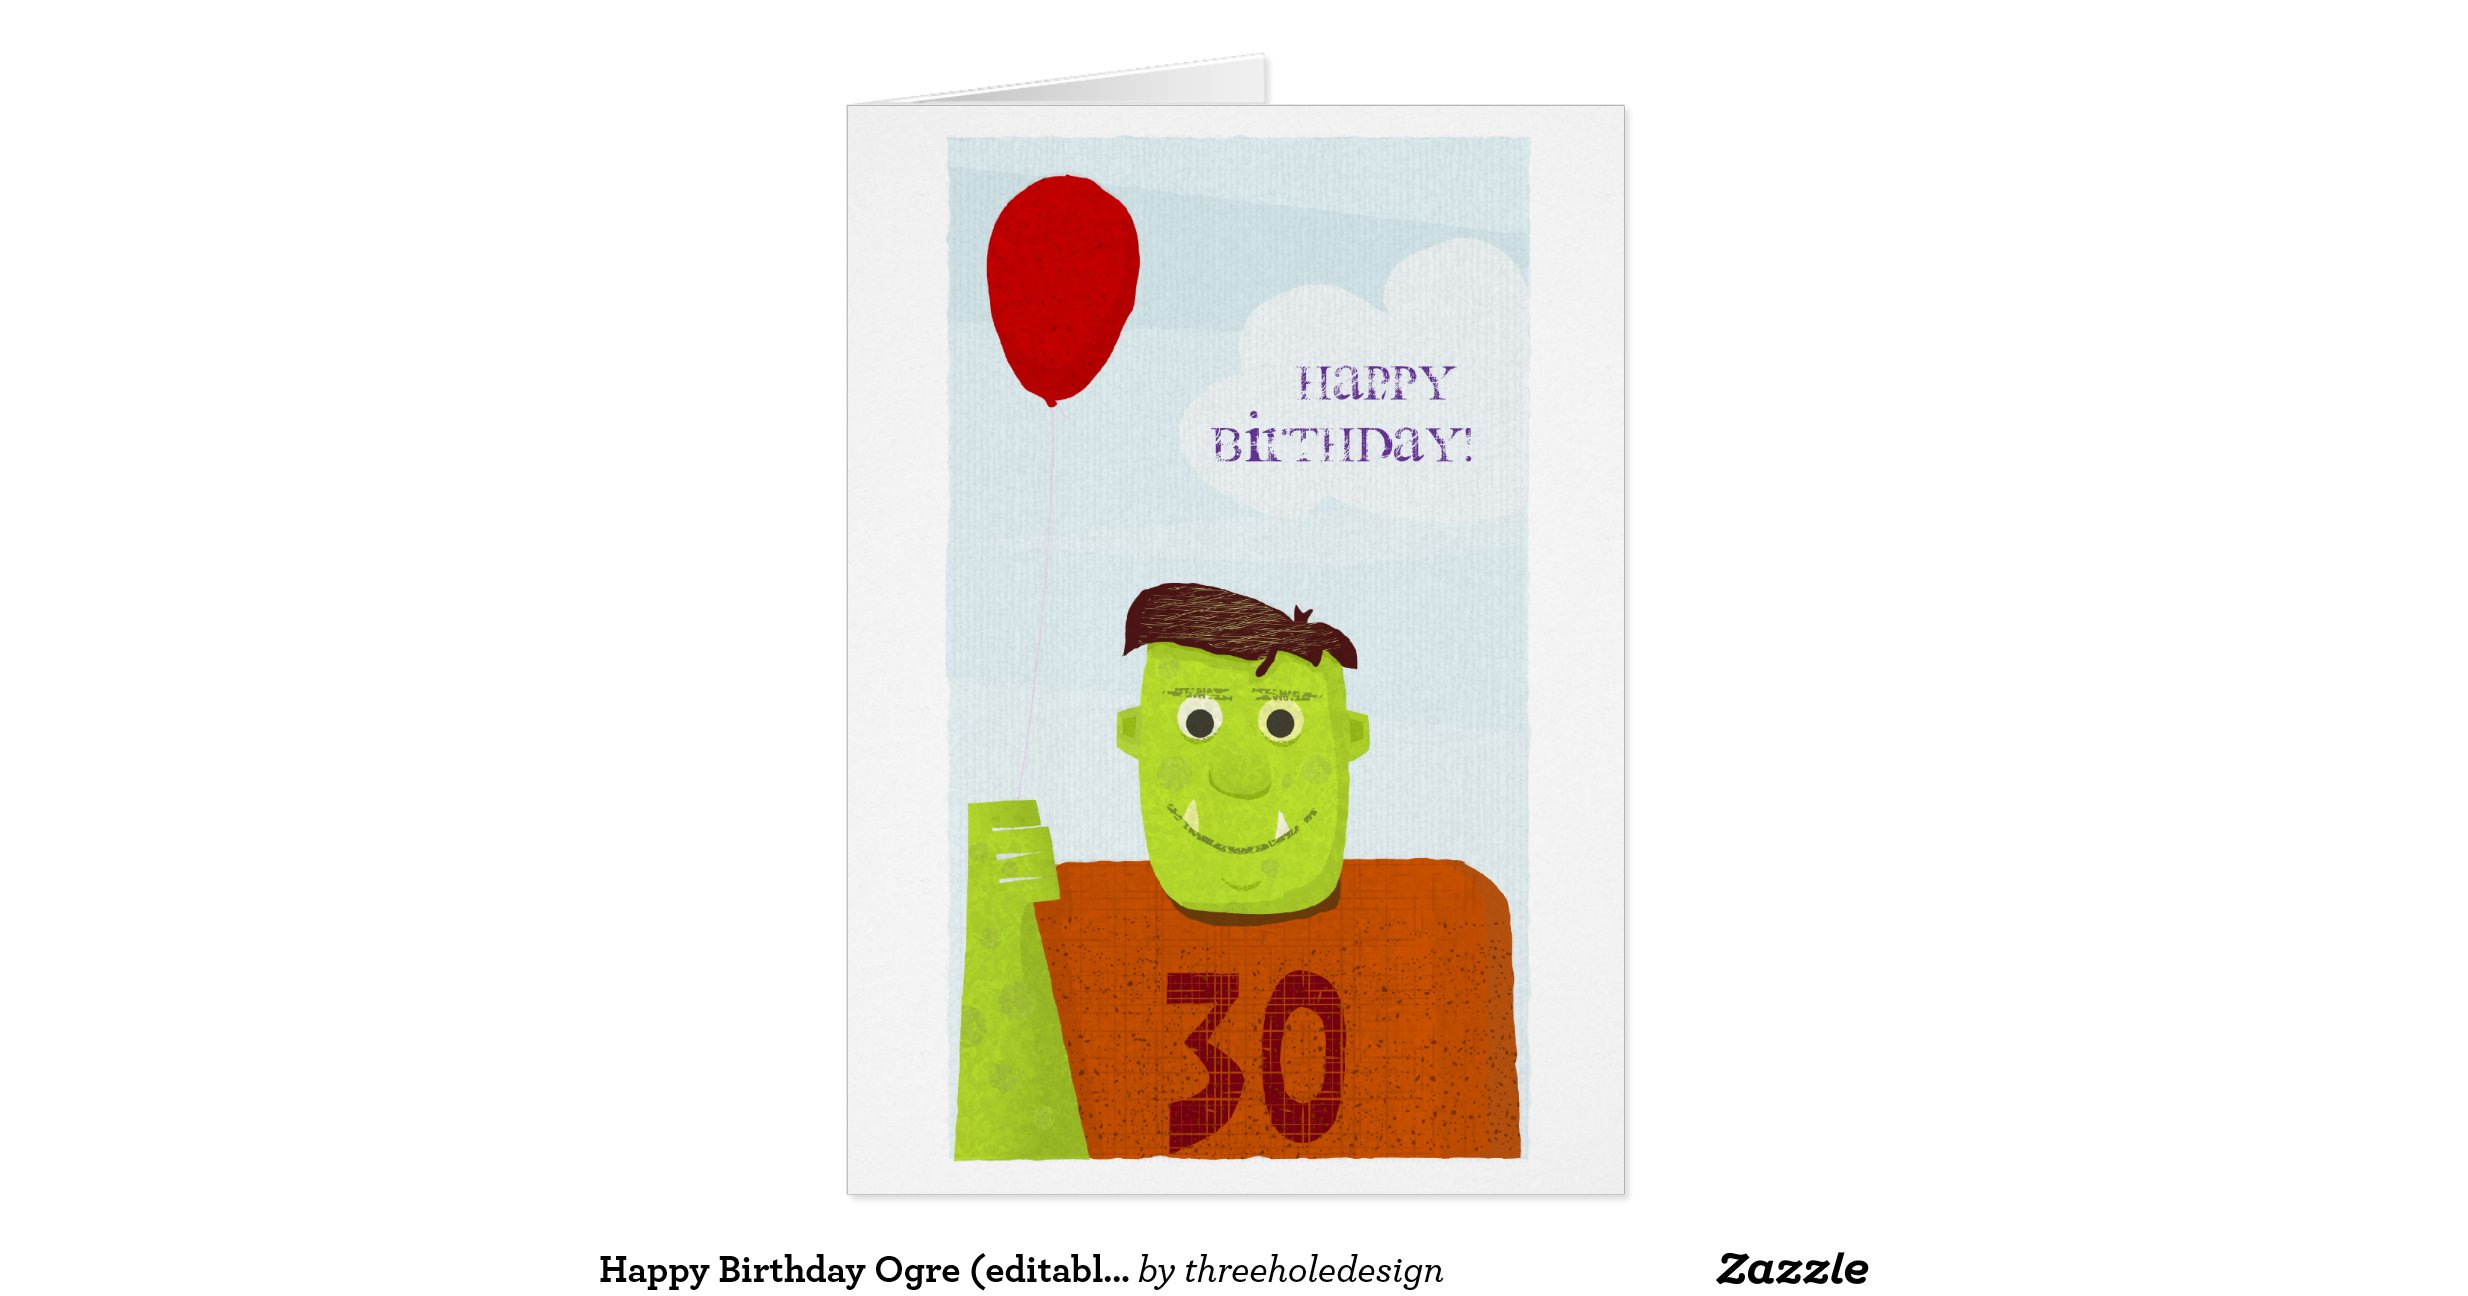 Happy birthday ogre editable text greeting card r3b732d6111f246fcb21fe3dd0e2a8cca xvuat 8byvr for Editable birthday cards